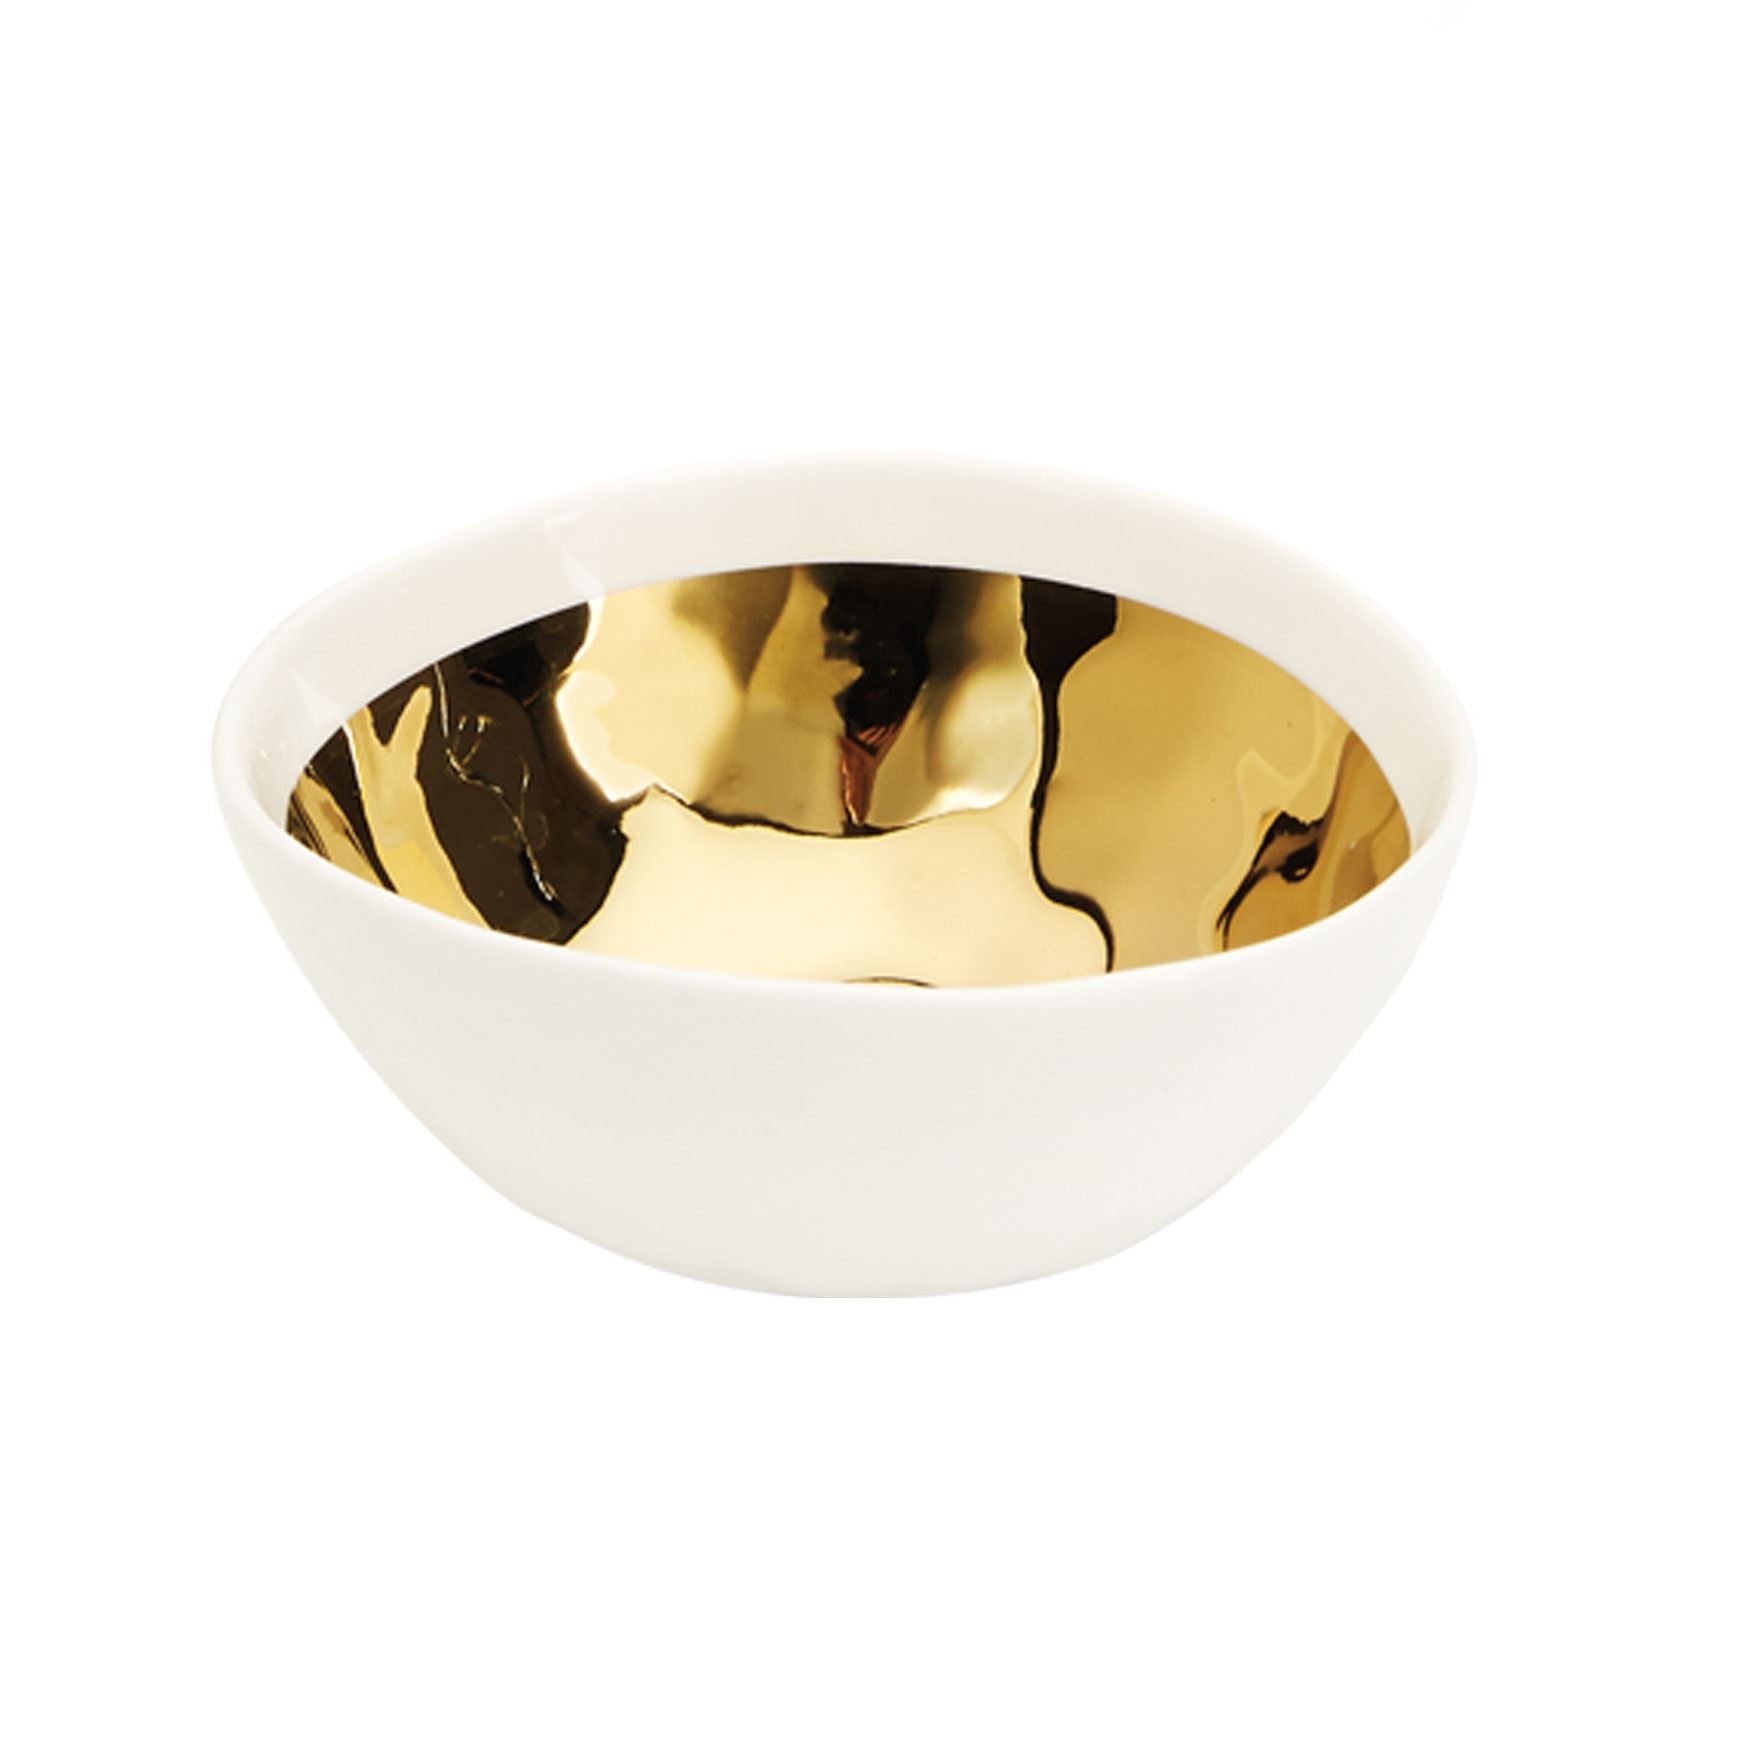 Golden Border Tiny Bowls, Set of 4, WHITE GOLD